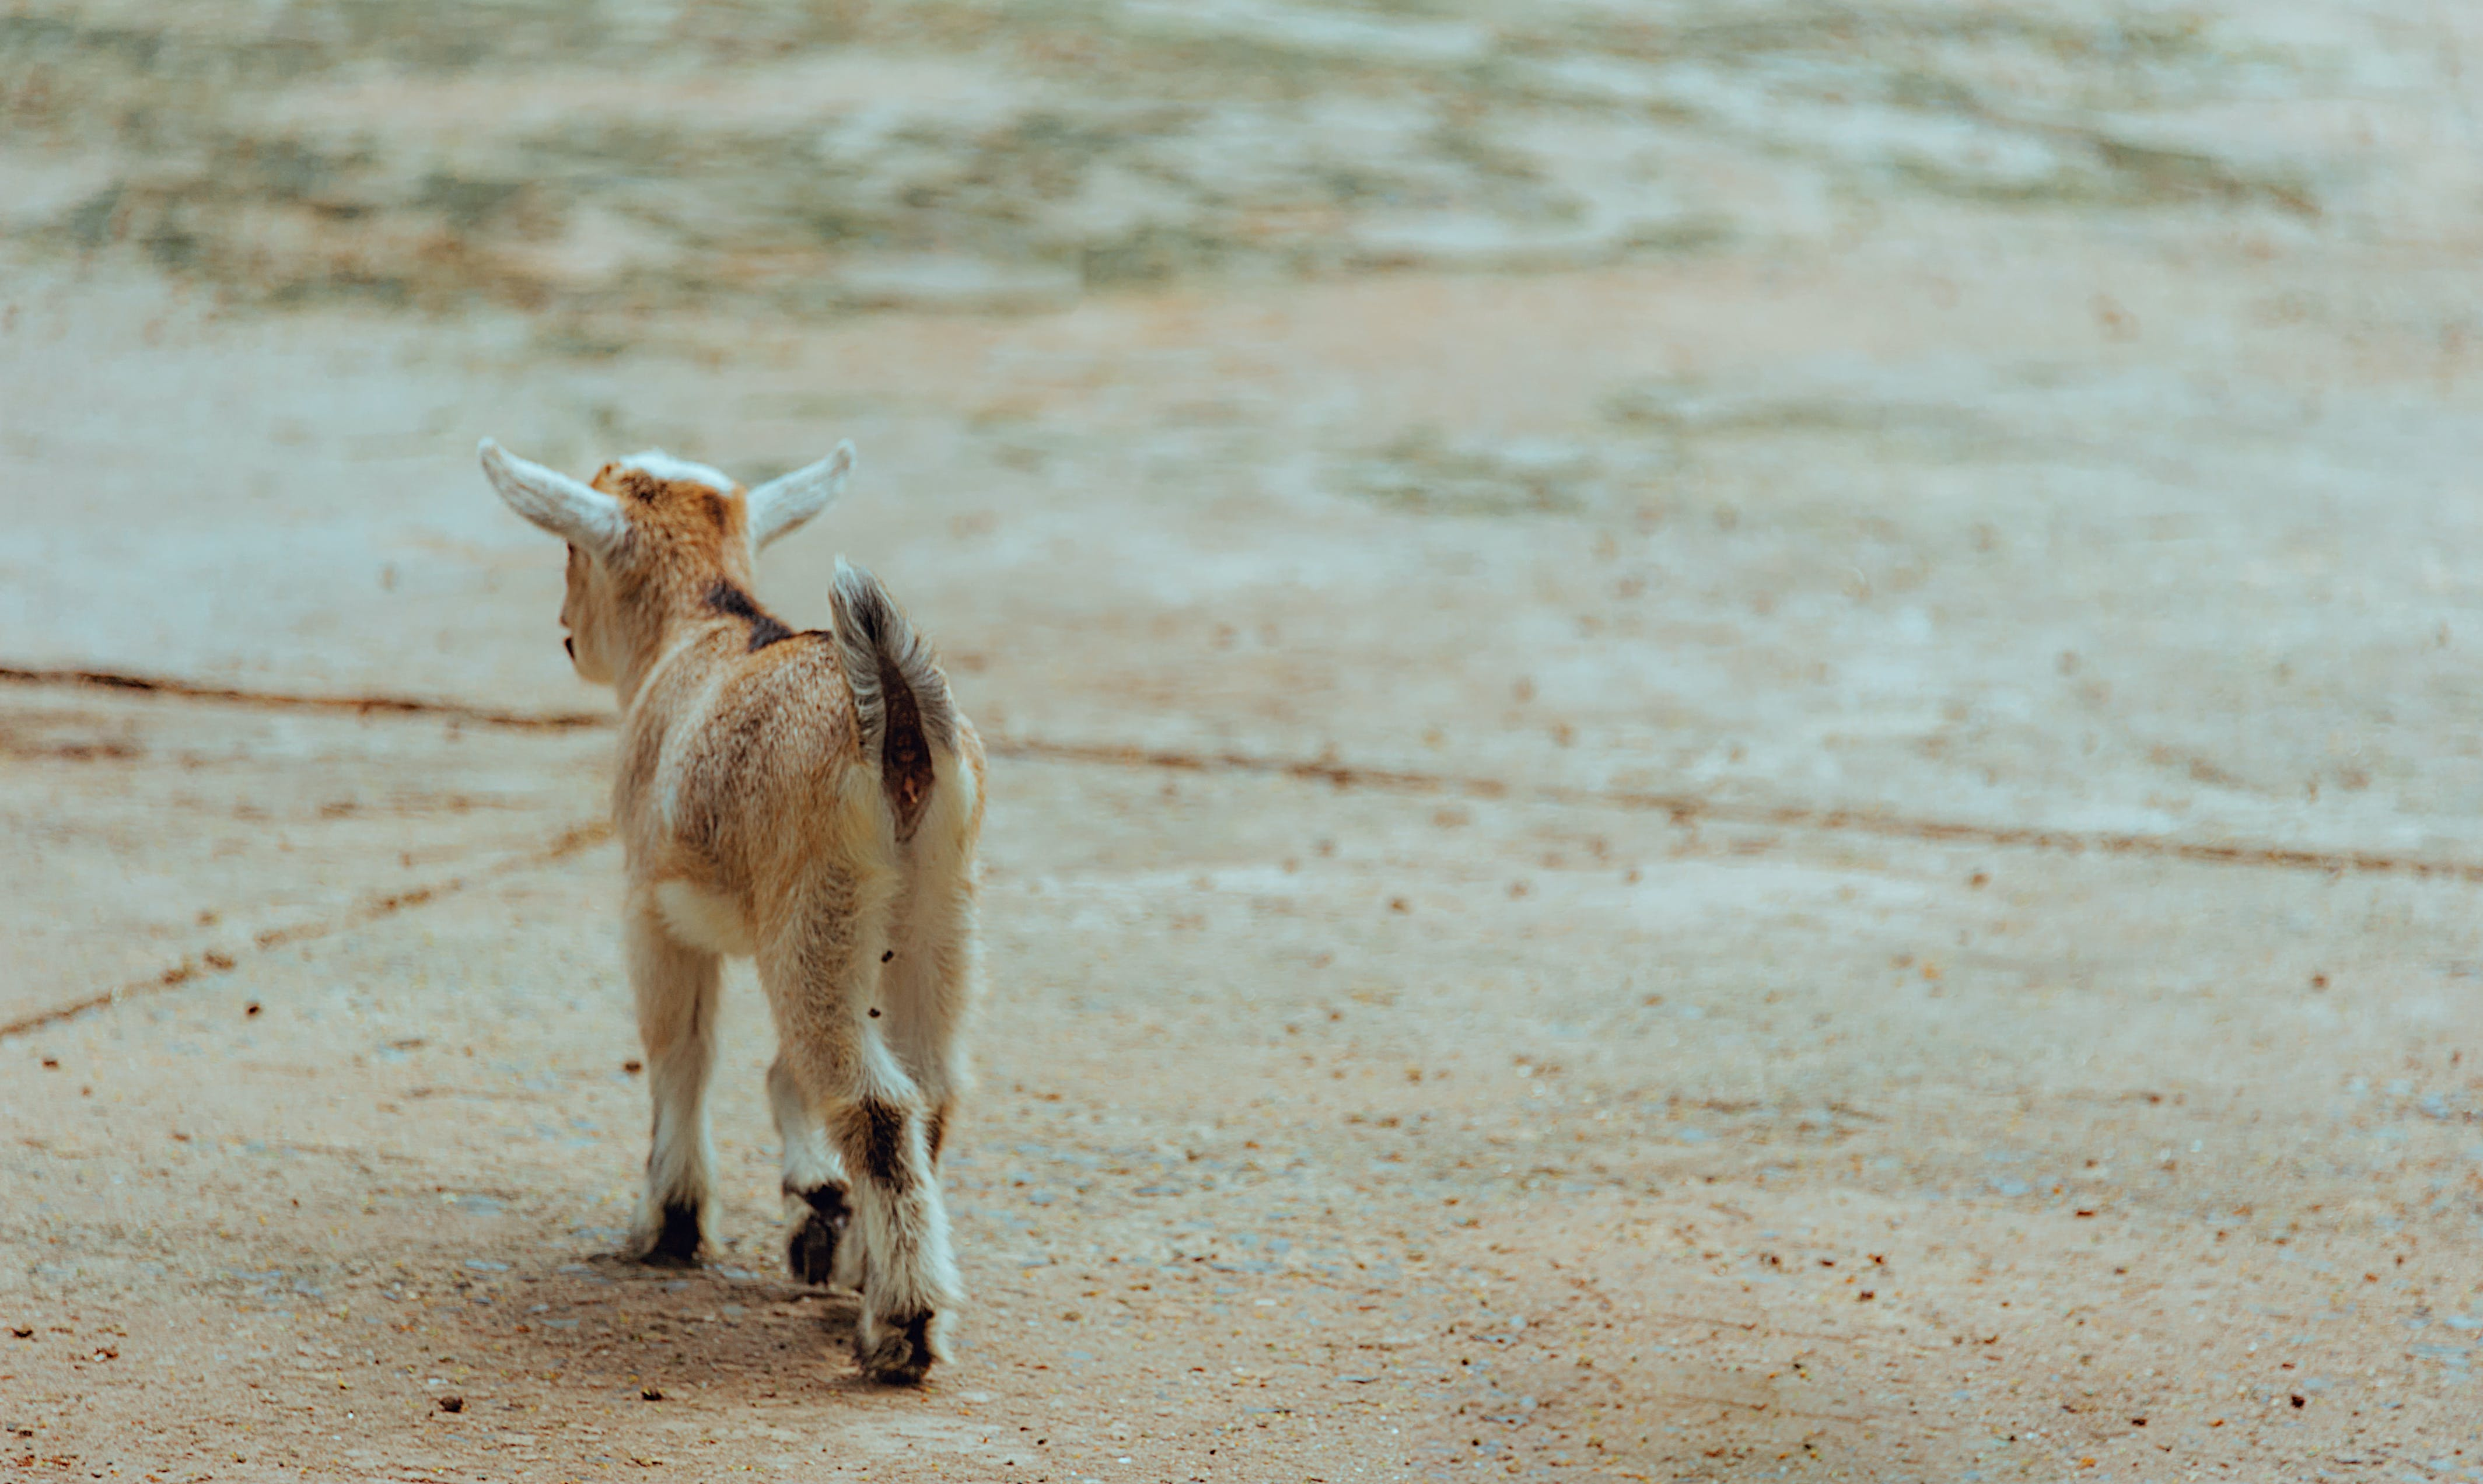 Brown and White Goat Walking on Ground